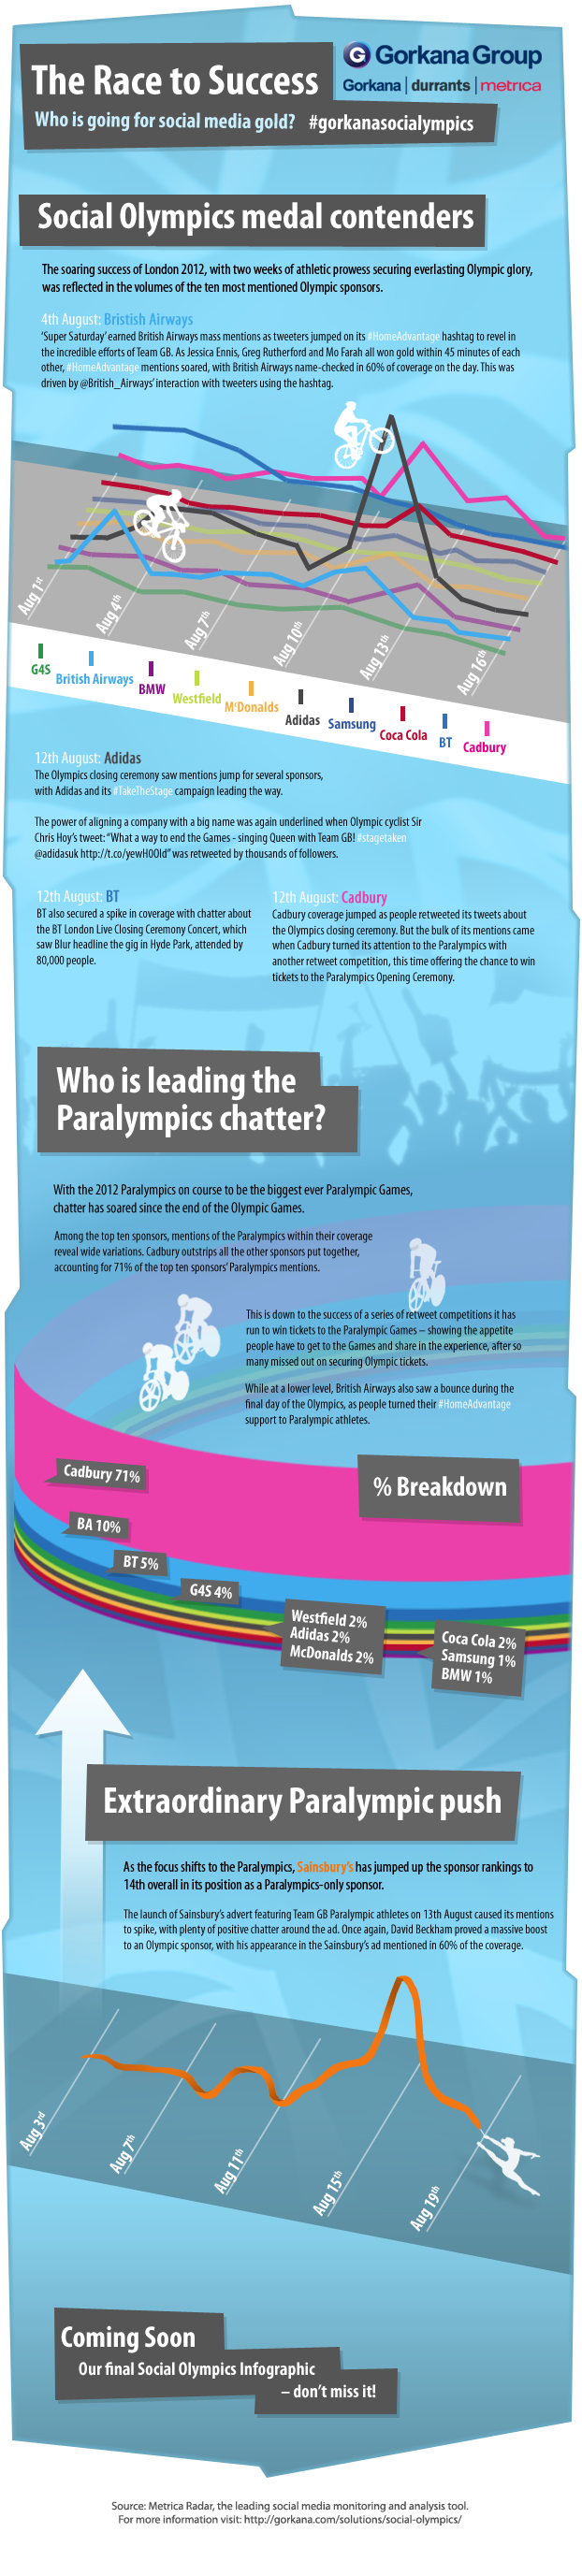 Who are the Social Olympics medal contenders?Measurement Matters